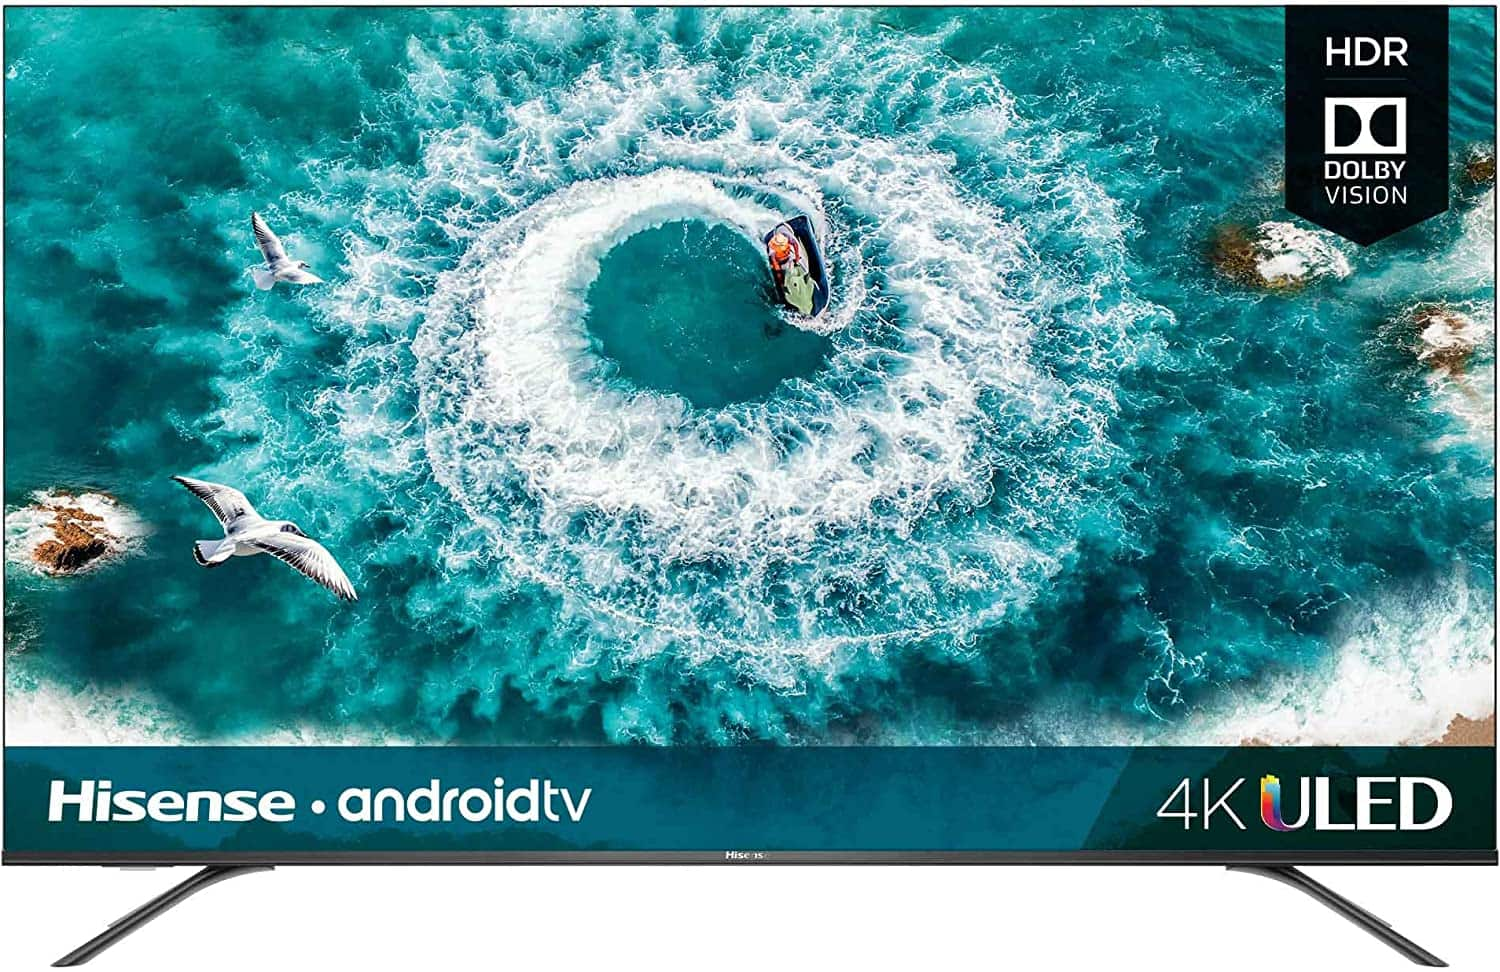 """Hisense 65H8F 4K UHD LED 65"""" LCD TV -  Full Array Local Dimming - Dolby vision HDR + HDR10 -$569.99 + Free Shipping @Costco"""